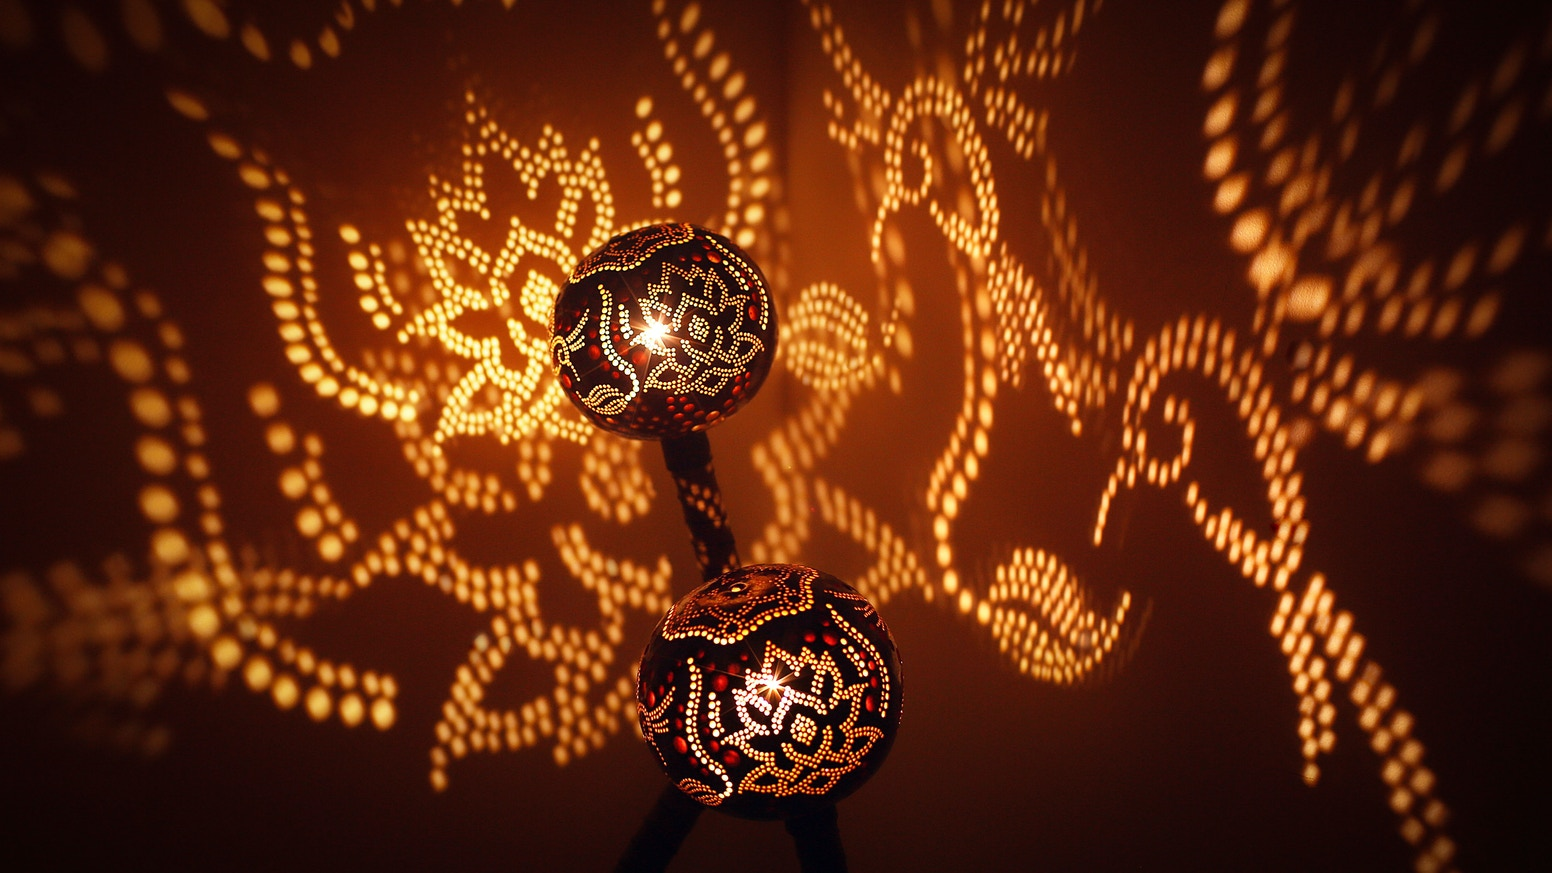 Light Piece bringing Mesmerizing Art to life. Crafted with Precision.